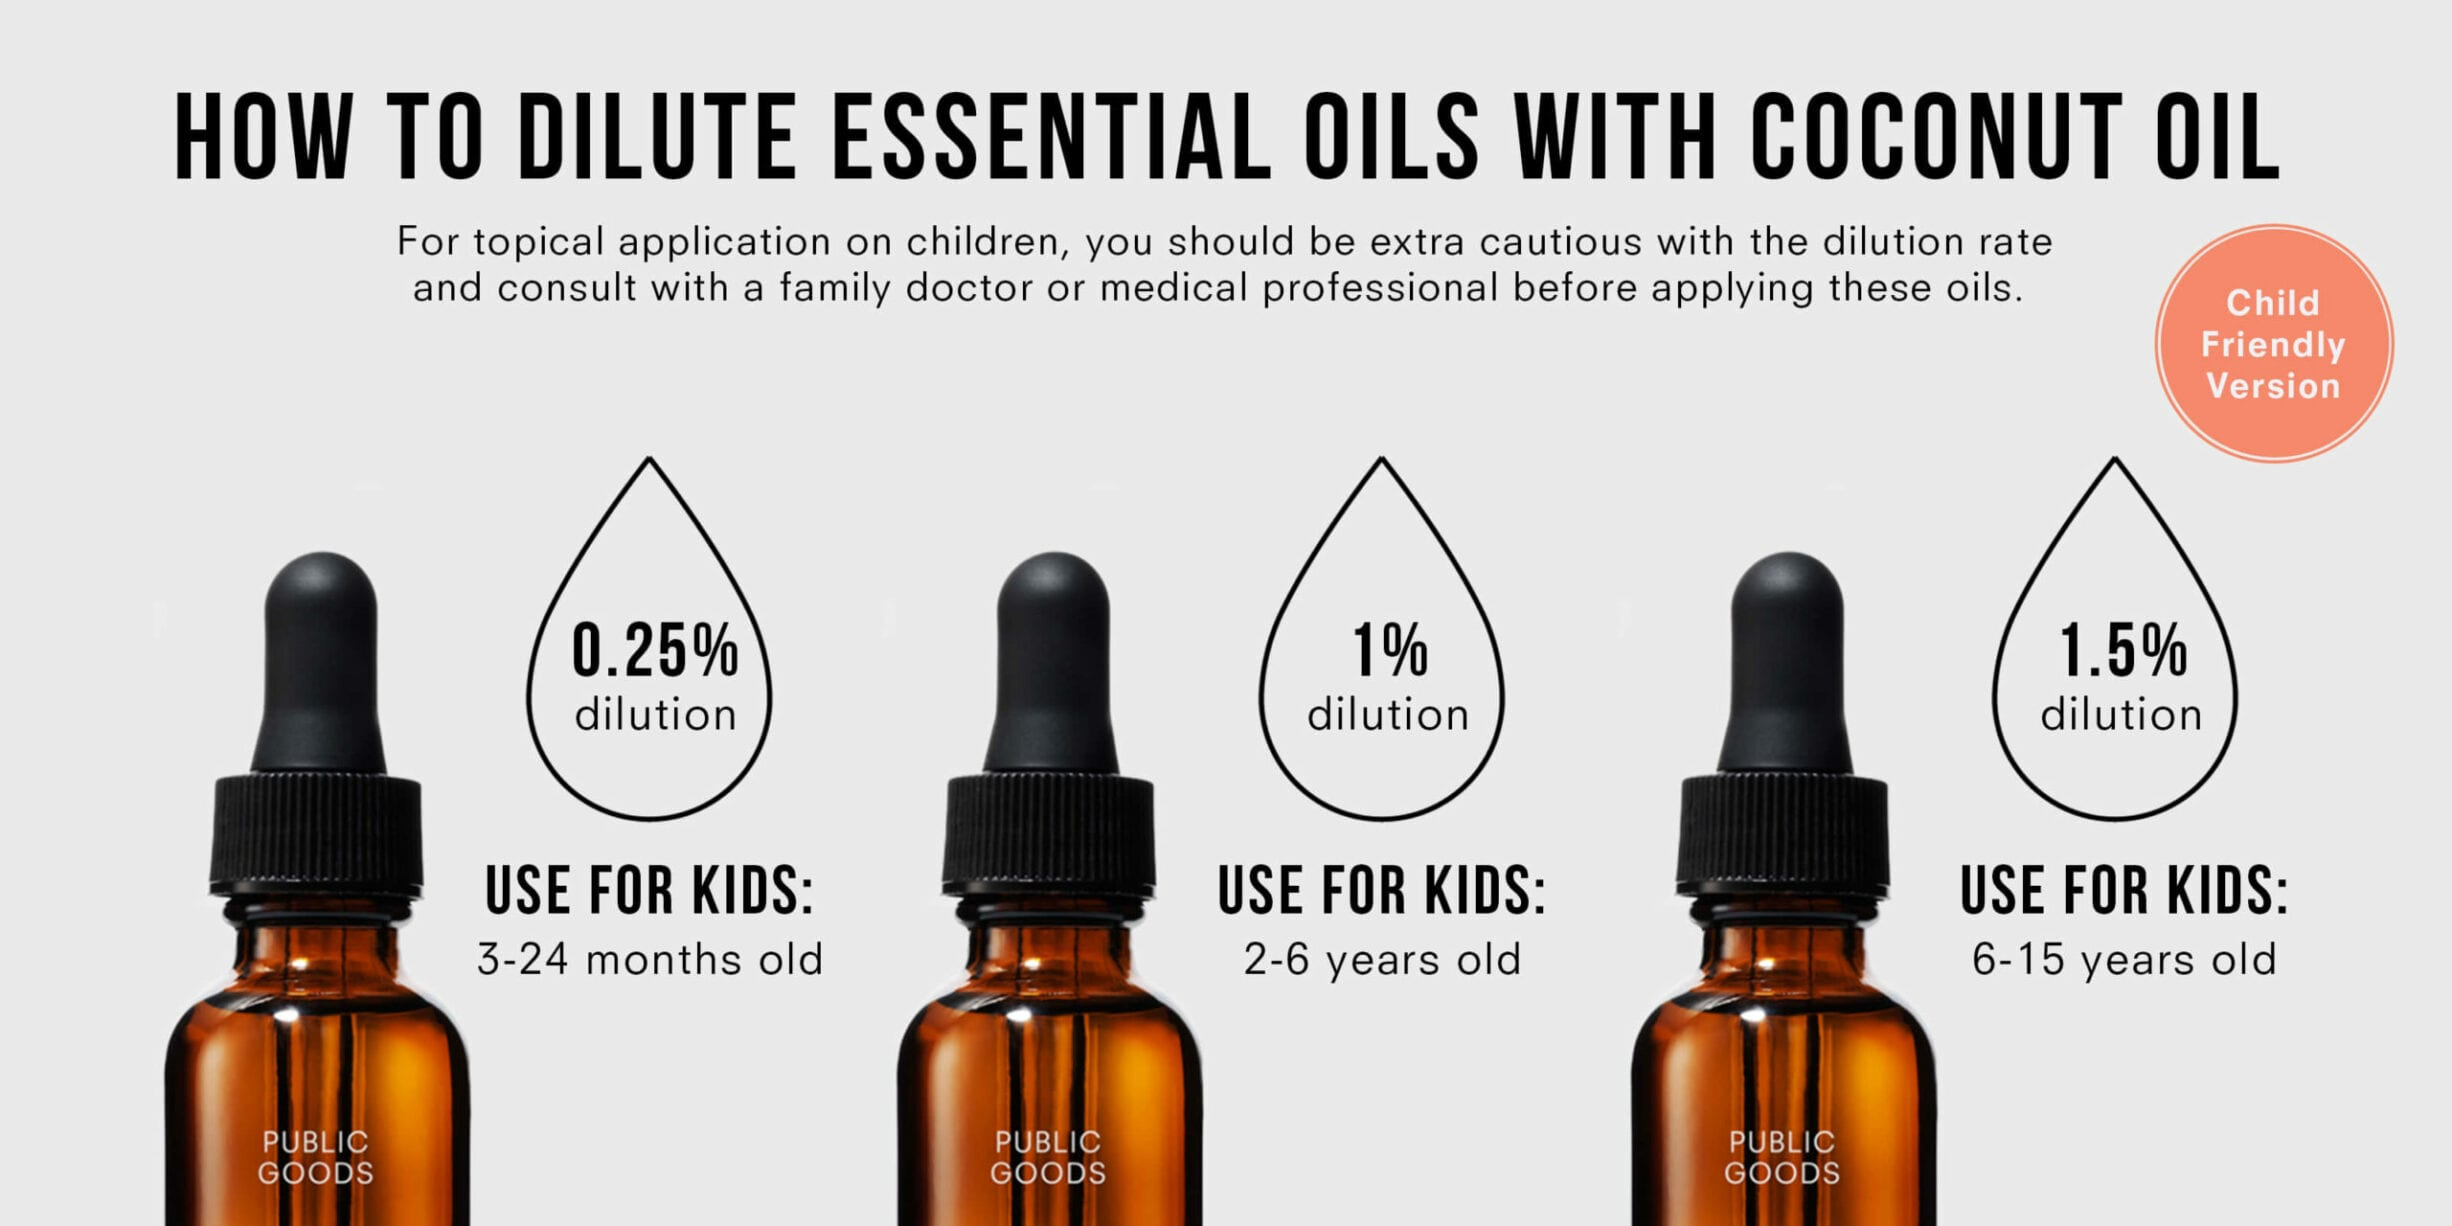 How To Dilute Essential Oils With Coconut Oil In 4 Simple Steps Public Goods Blog